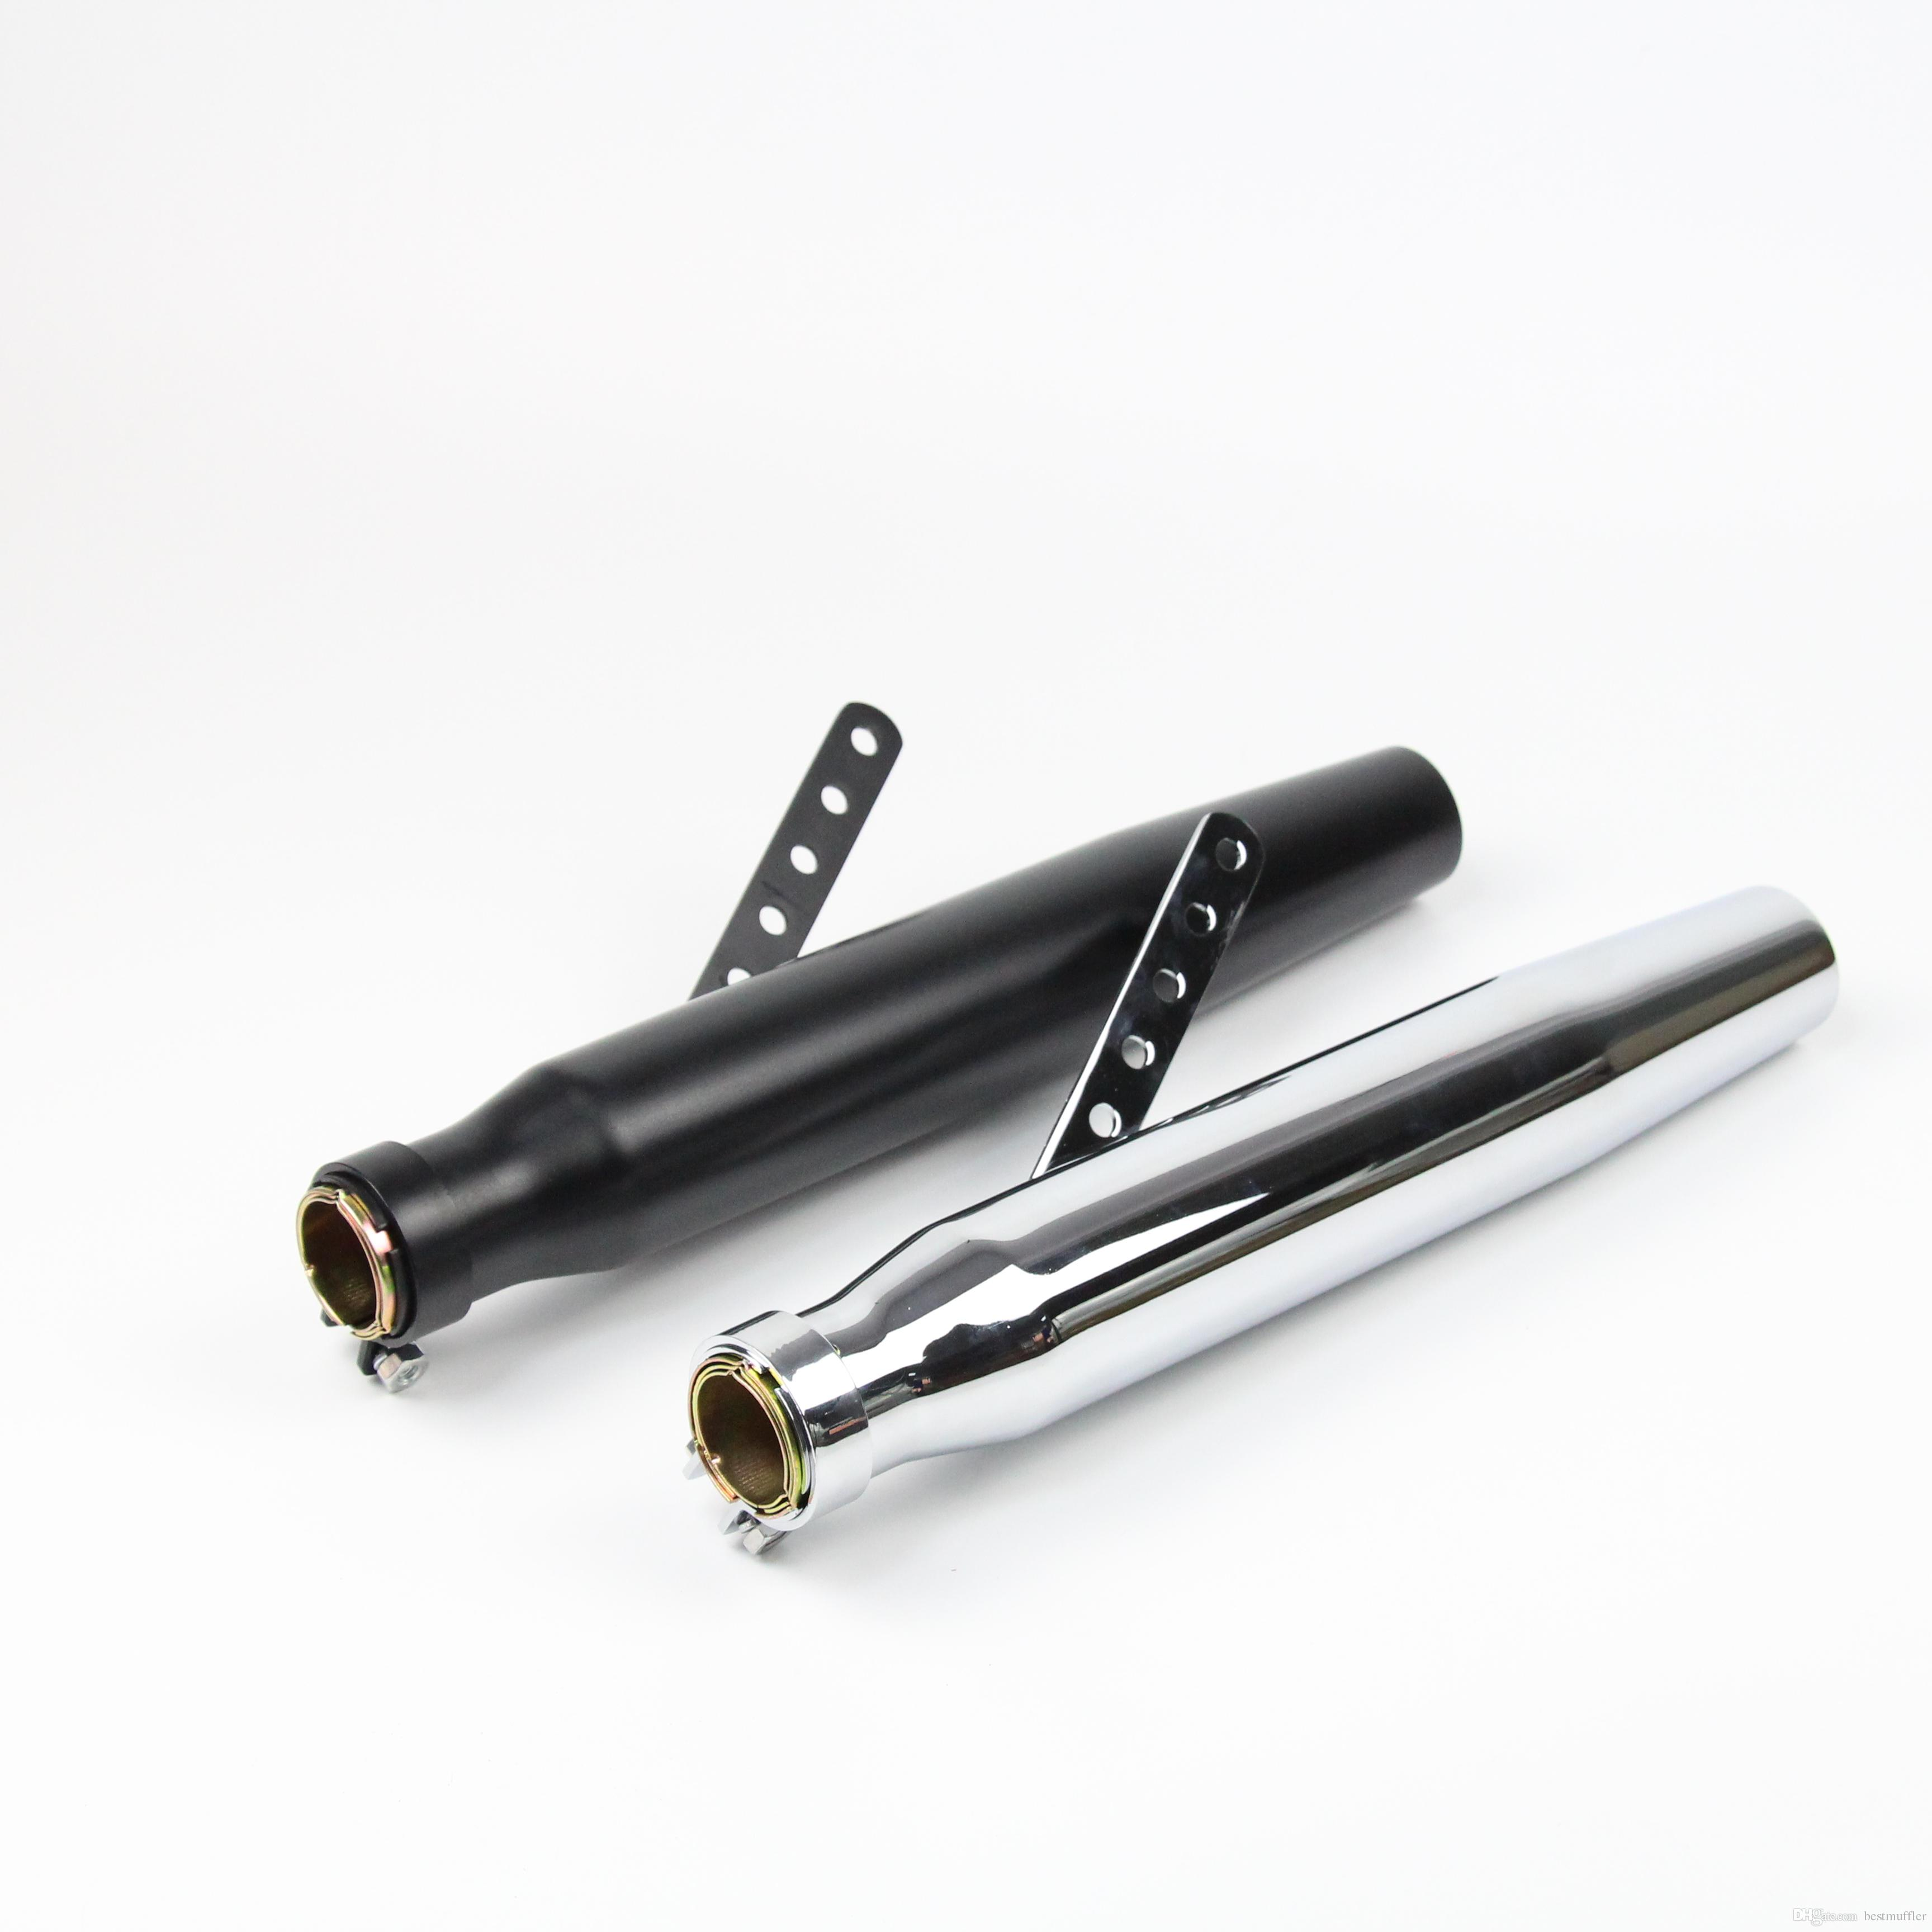 49mm Universal Motorcycle Exhaust Pipe Stainless Steel Exhaust System With Slip On Dirt Street Bike Motorcycle